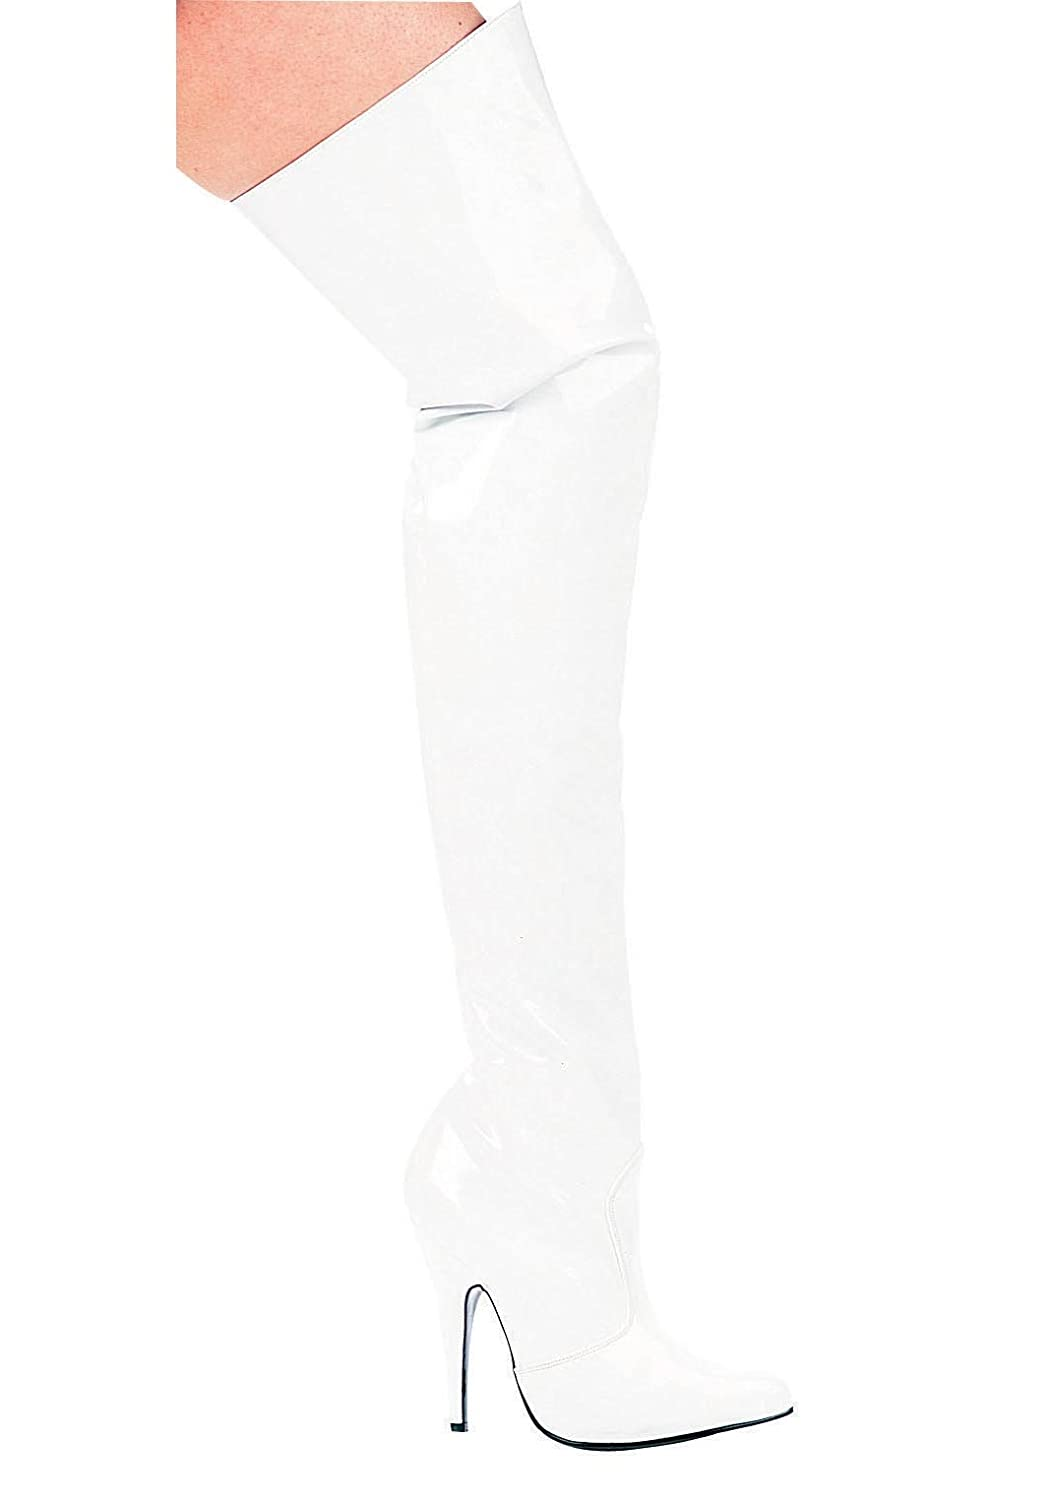 5 Inch Heel Thigh High Boots Women'S Size Shoe Ellie Shoes